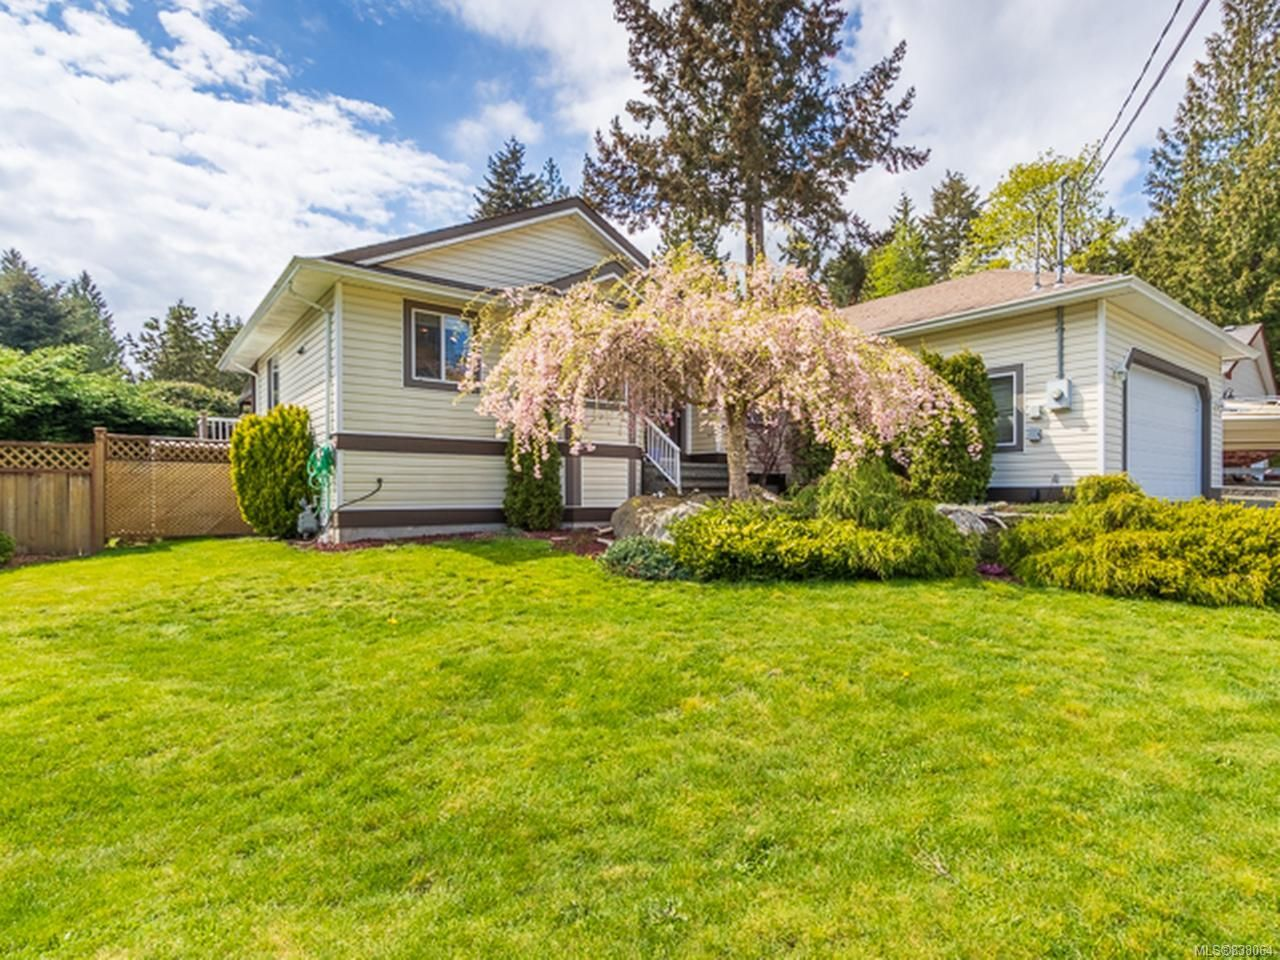 Main Photo: 1805 Richardson Rd in NANAIMO: Na Chase River House for sale (Nanaimo)  : MLS®# 838064